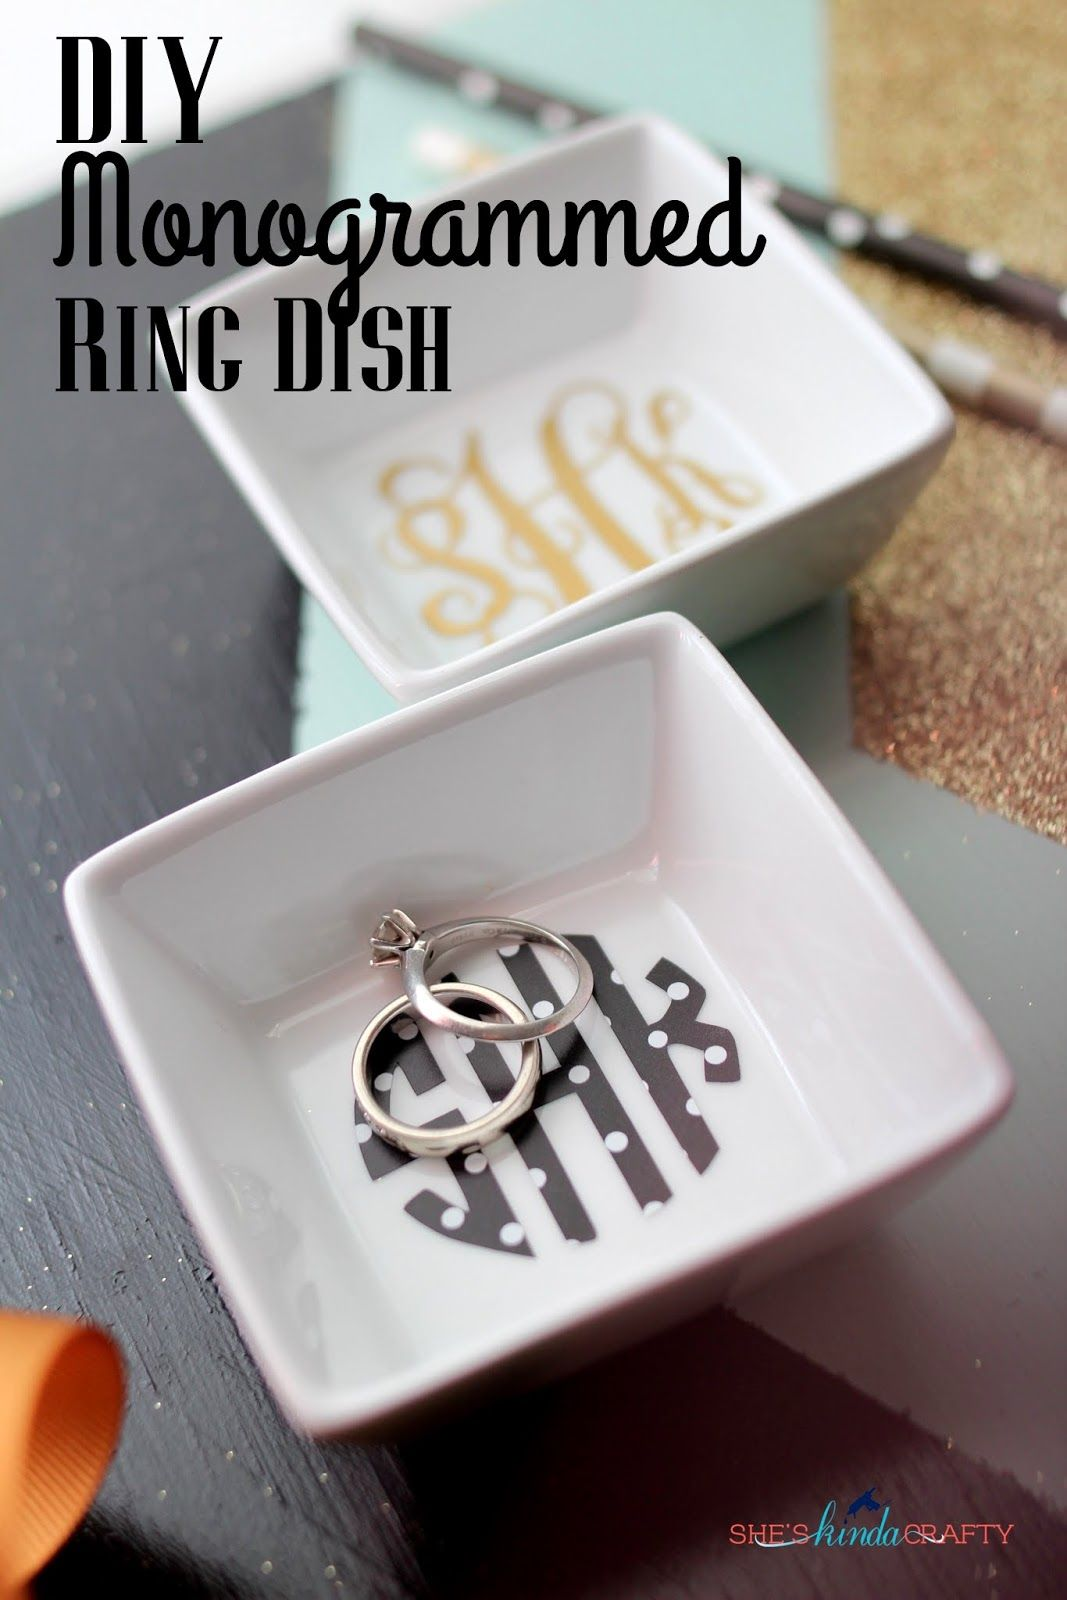 Diy Monogrammed Ring Dish Created With My Silhouette